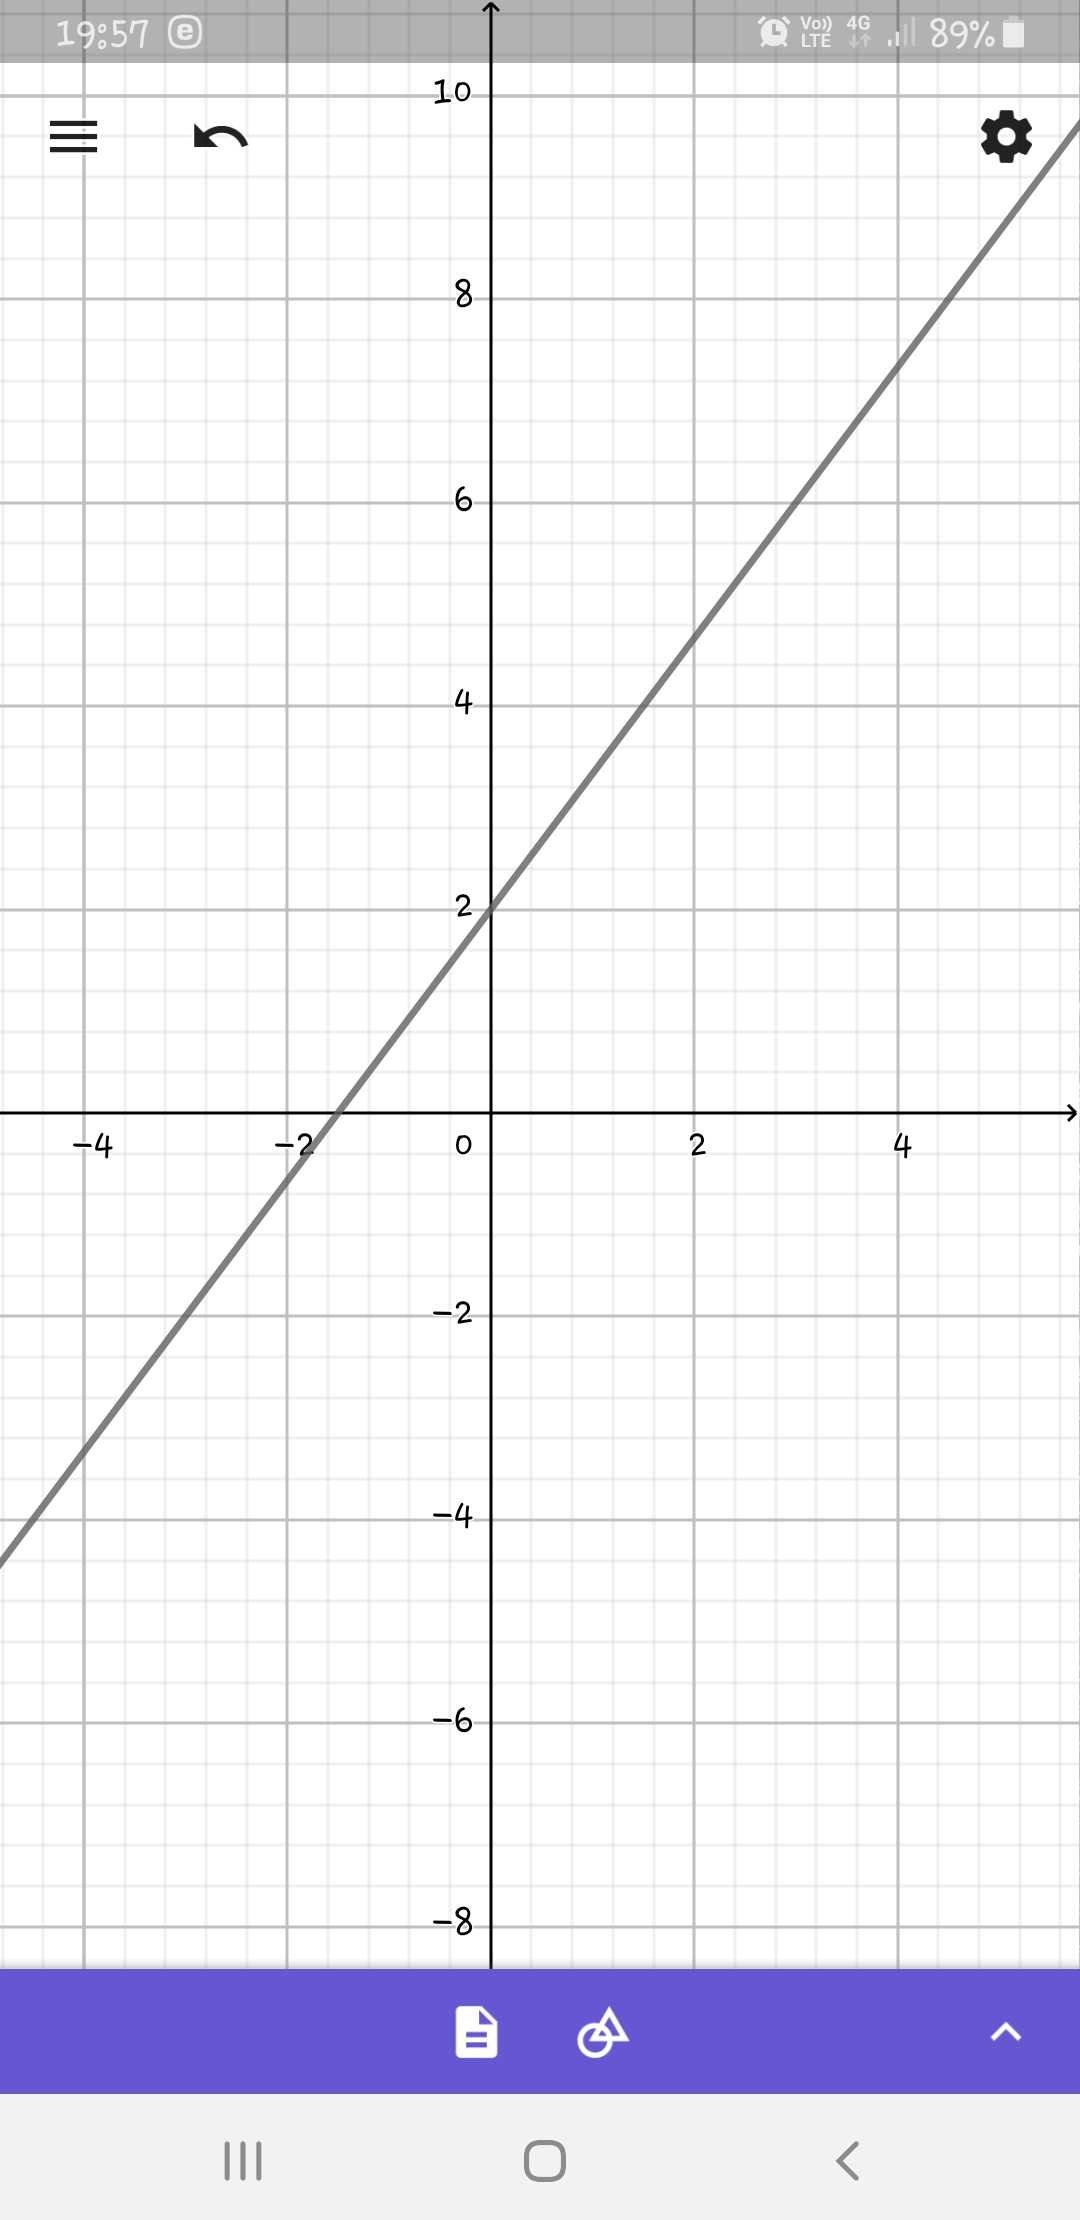 //forum.matematika.cz/upload3/img/2019-10/35099_Screenshot_20191017-195736_Geometry.jpg